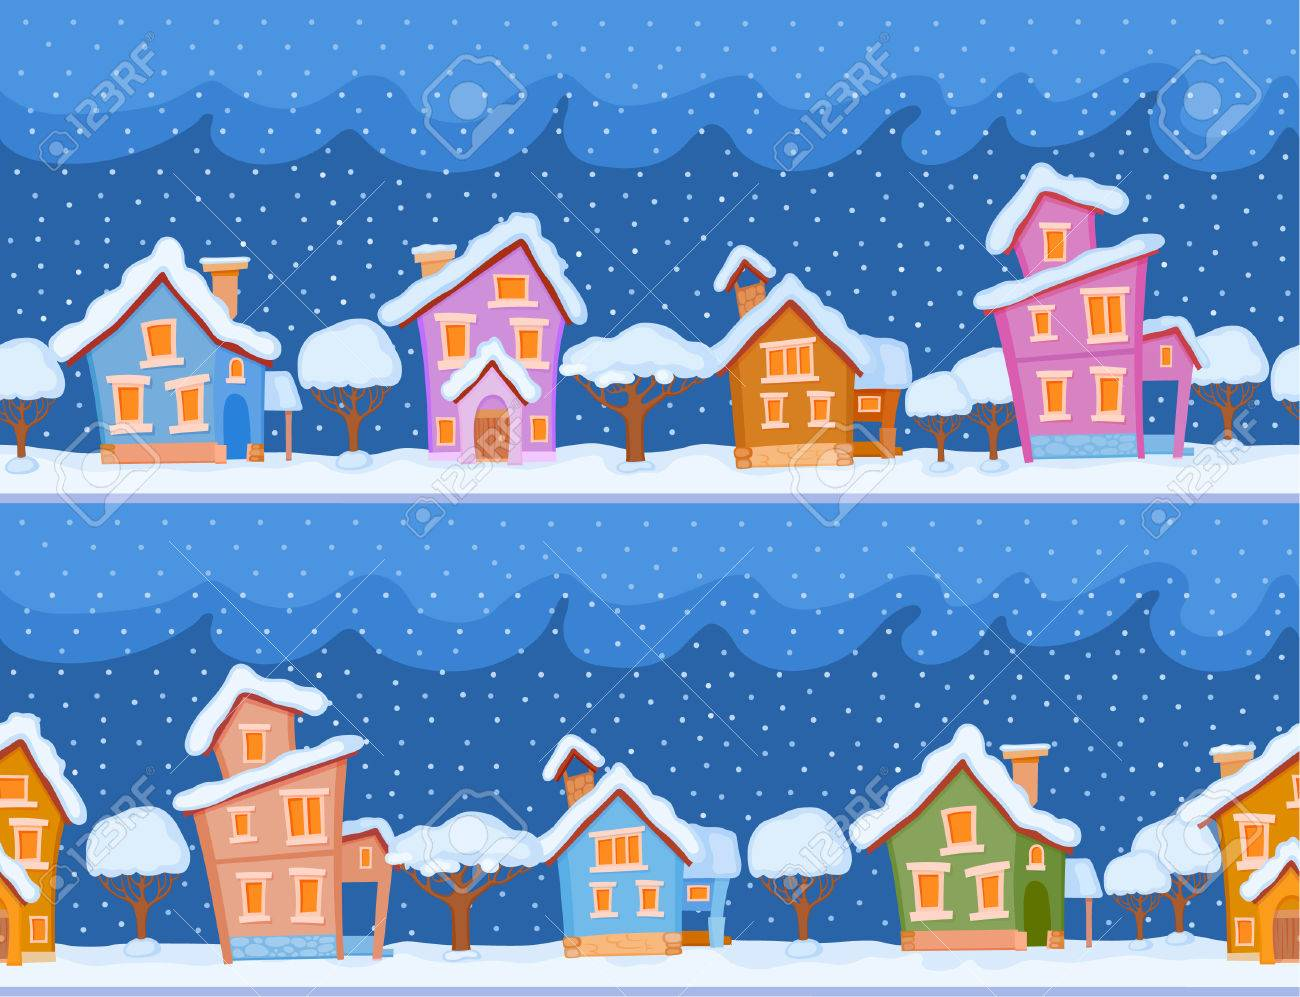 Backgrounds Of Winter Streets With Fabulous Houses And Trees. The Evening  Comes And The Snow